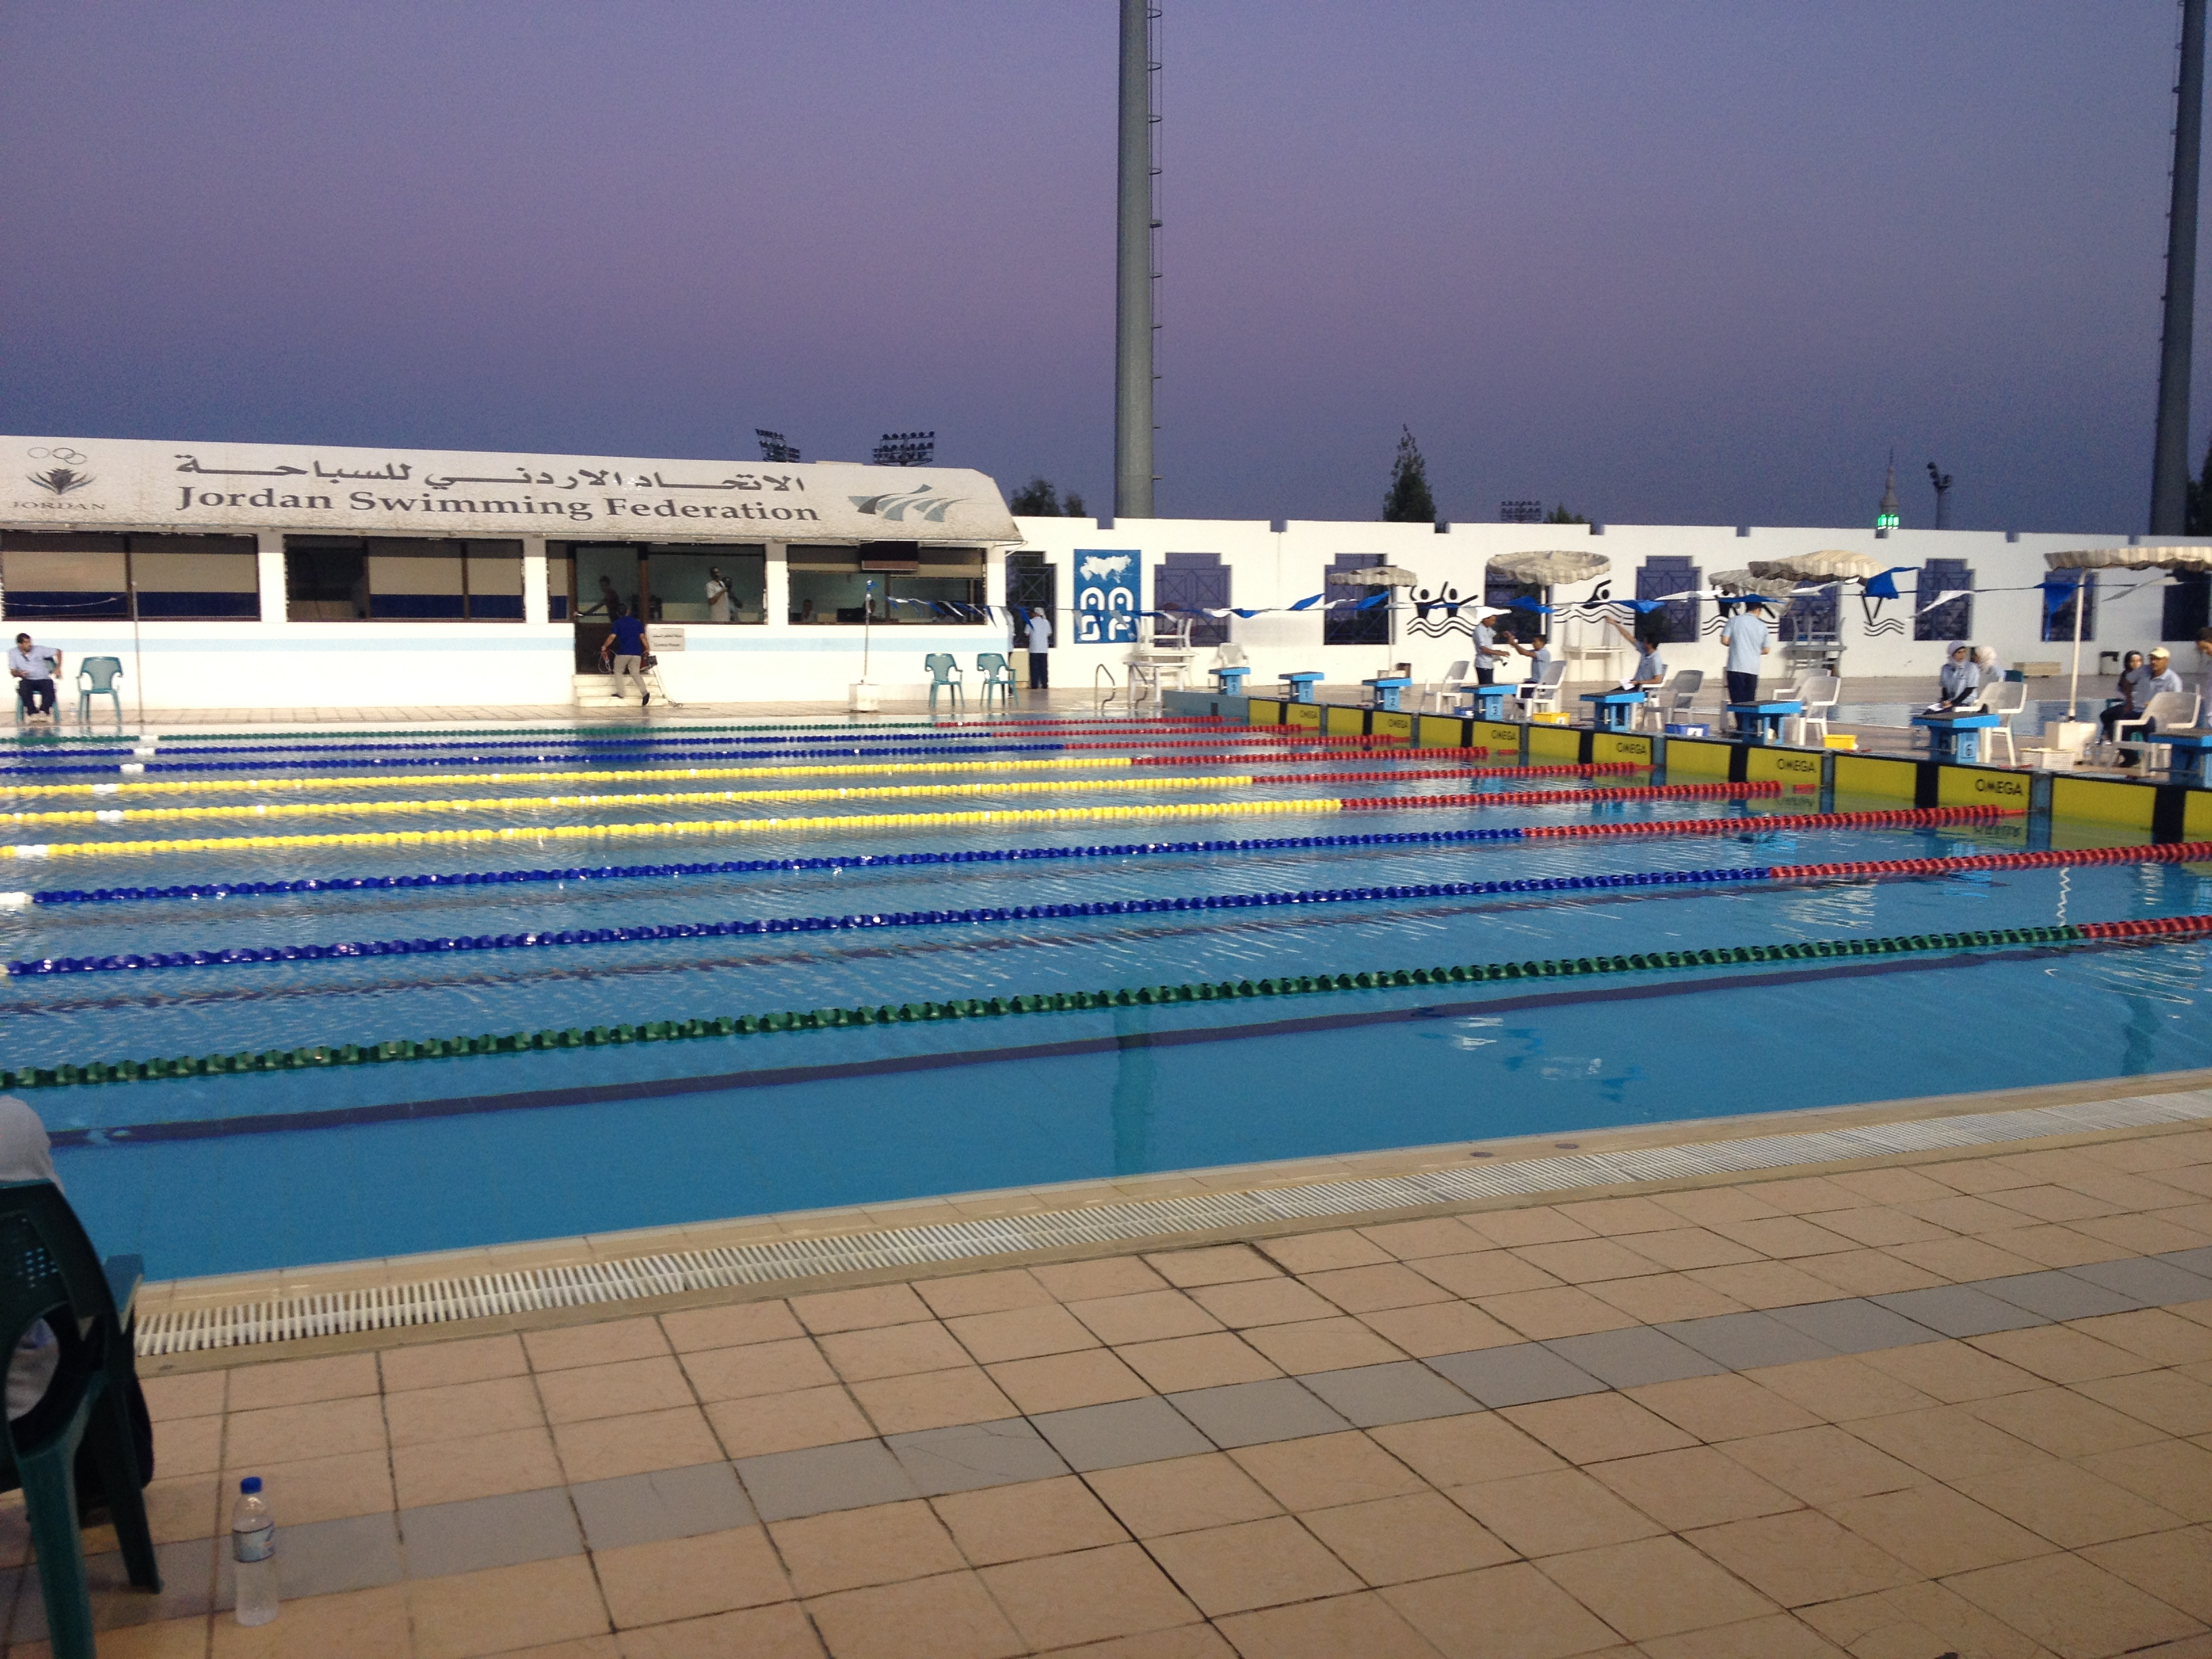 fileolympic swimming pool sport city amman 01jpg - Olympic Swimming Pool 2014